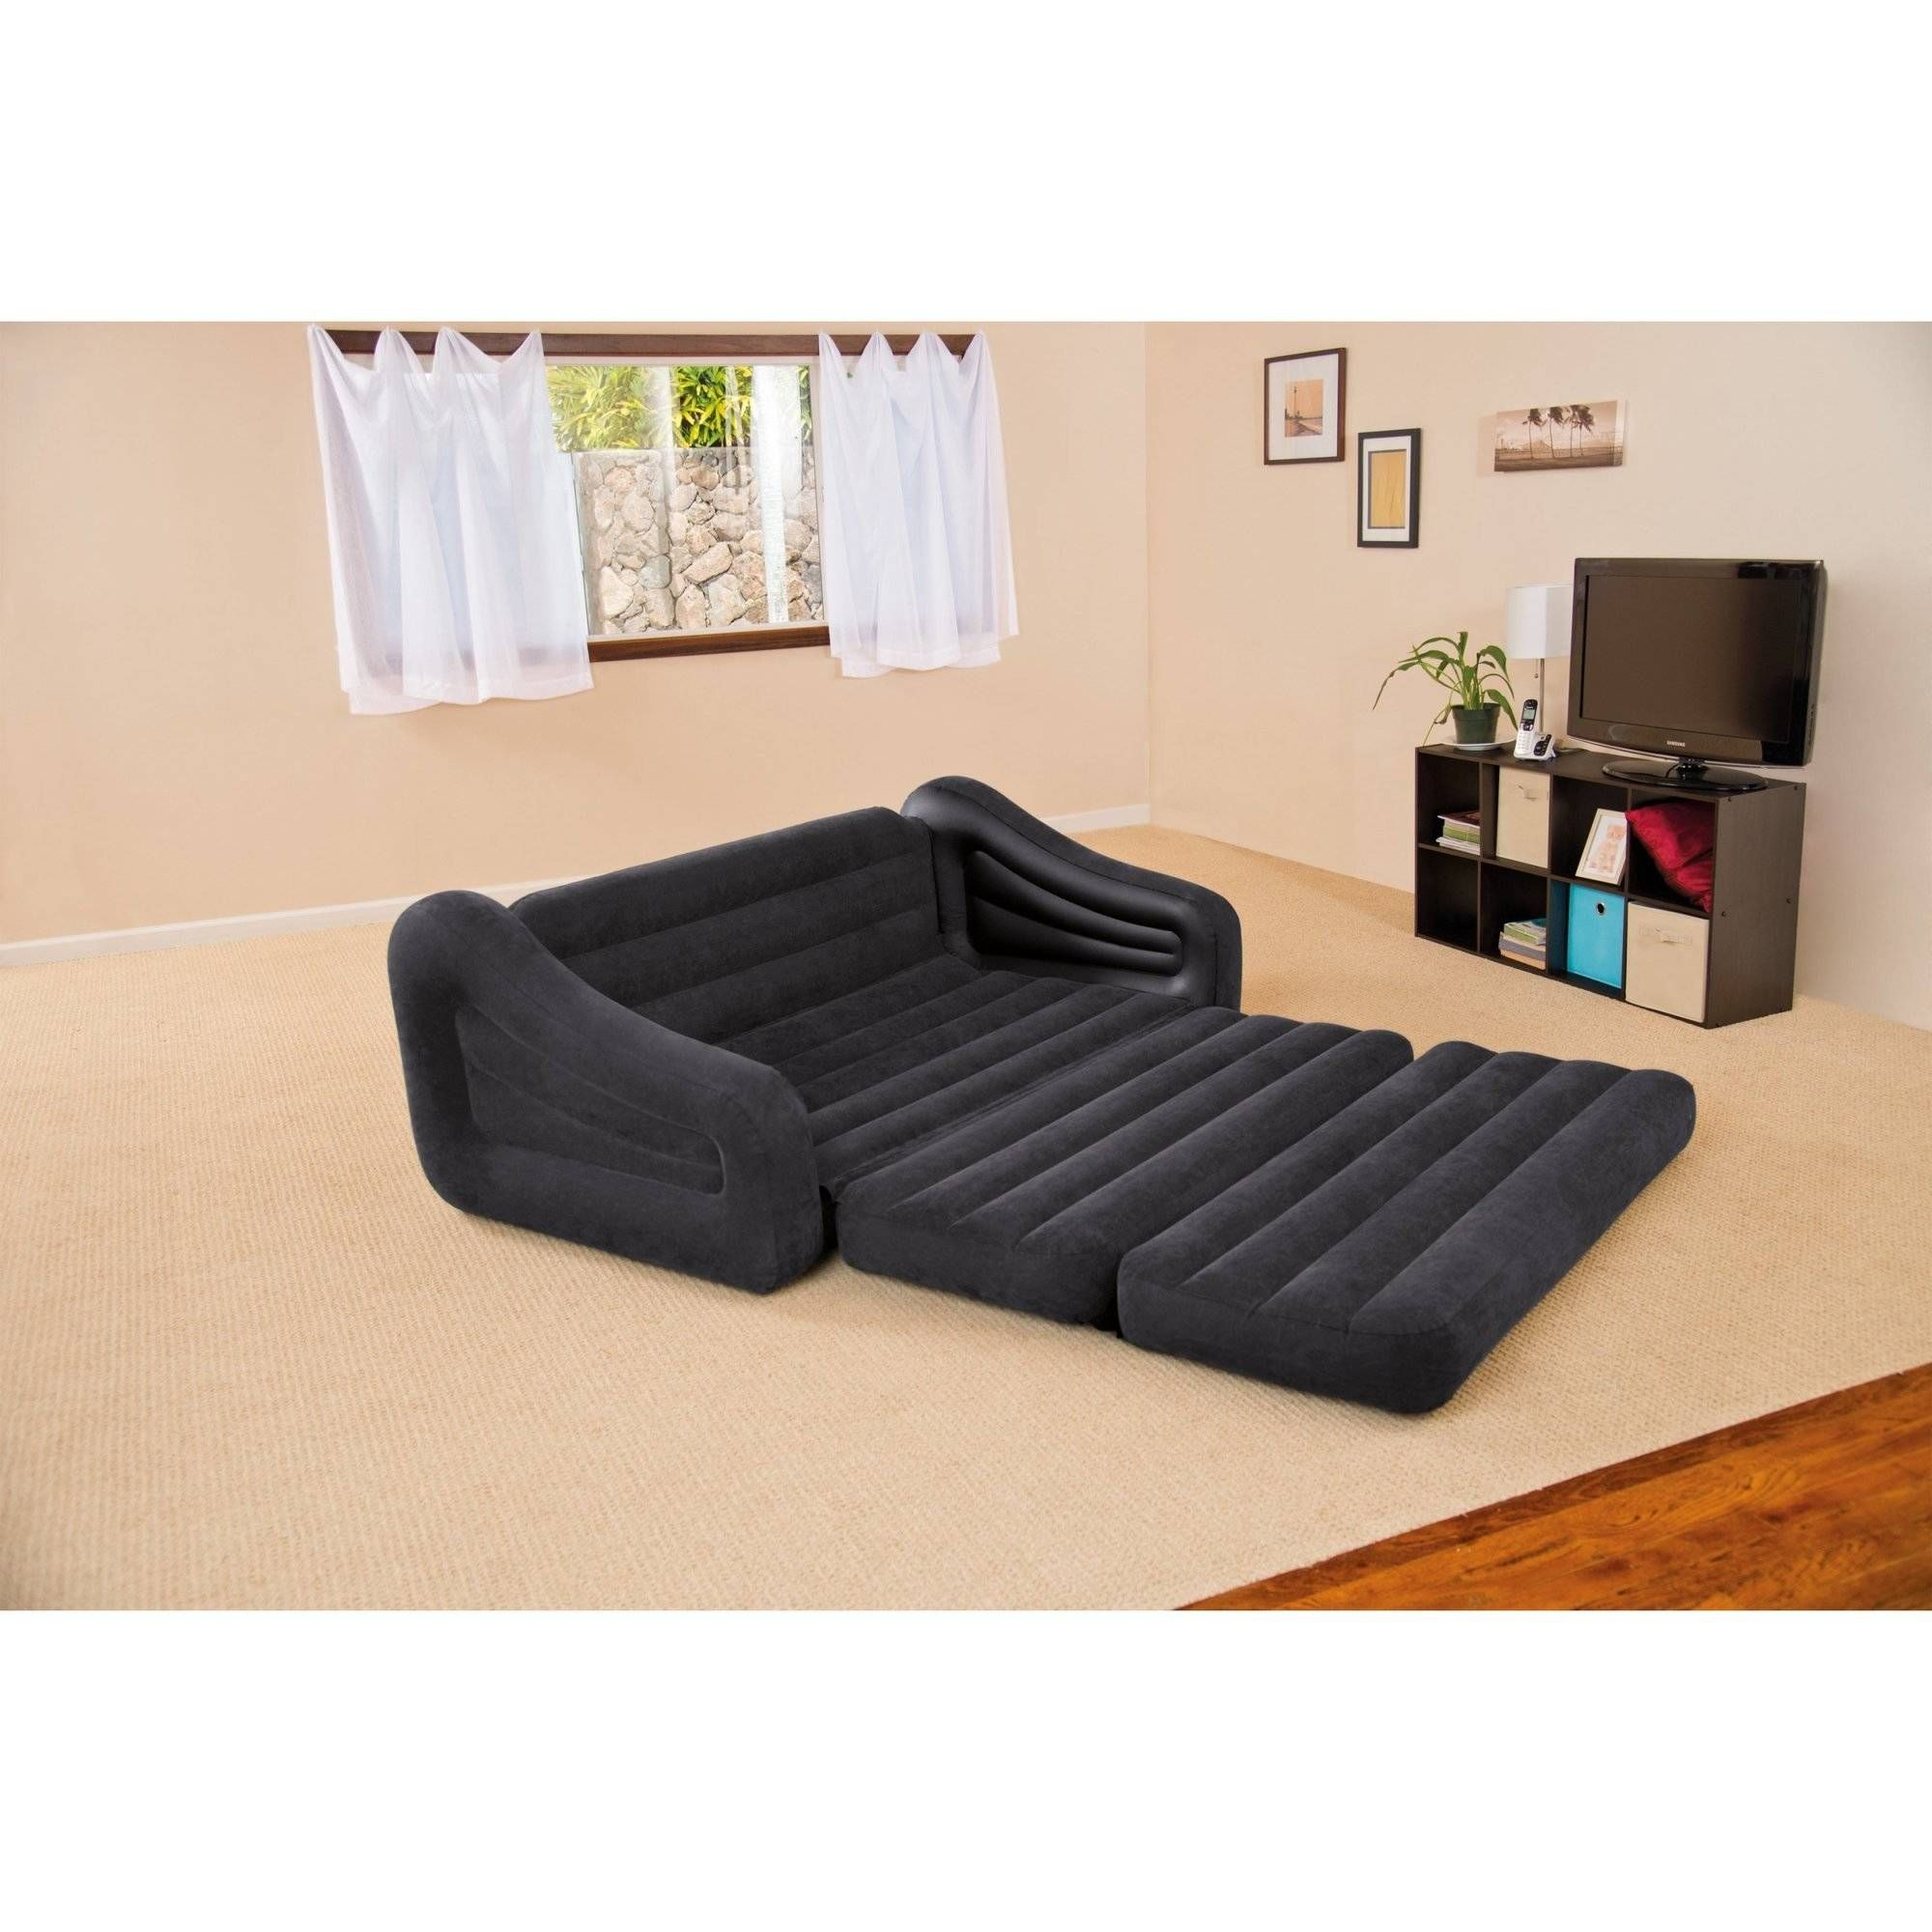 Sofa Cover nice Unique Sofa Bed Air Mattress With Additional Home Decorating Ideas with Sofa Bed Air